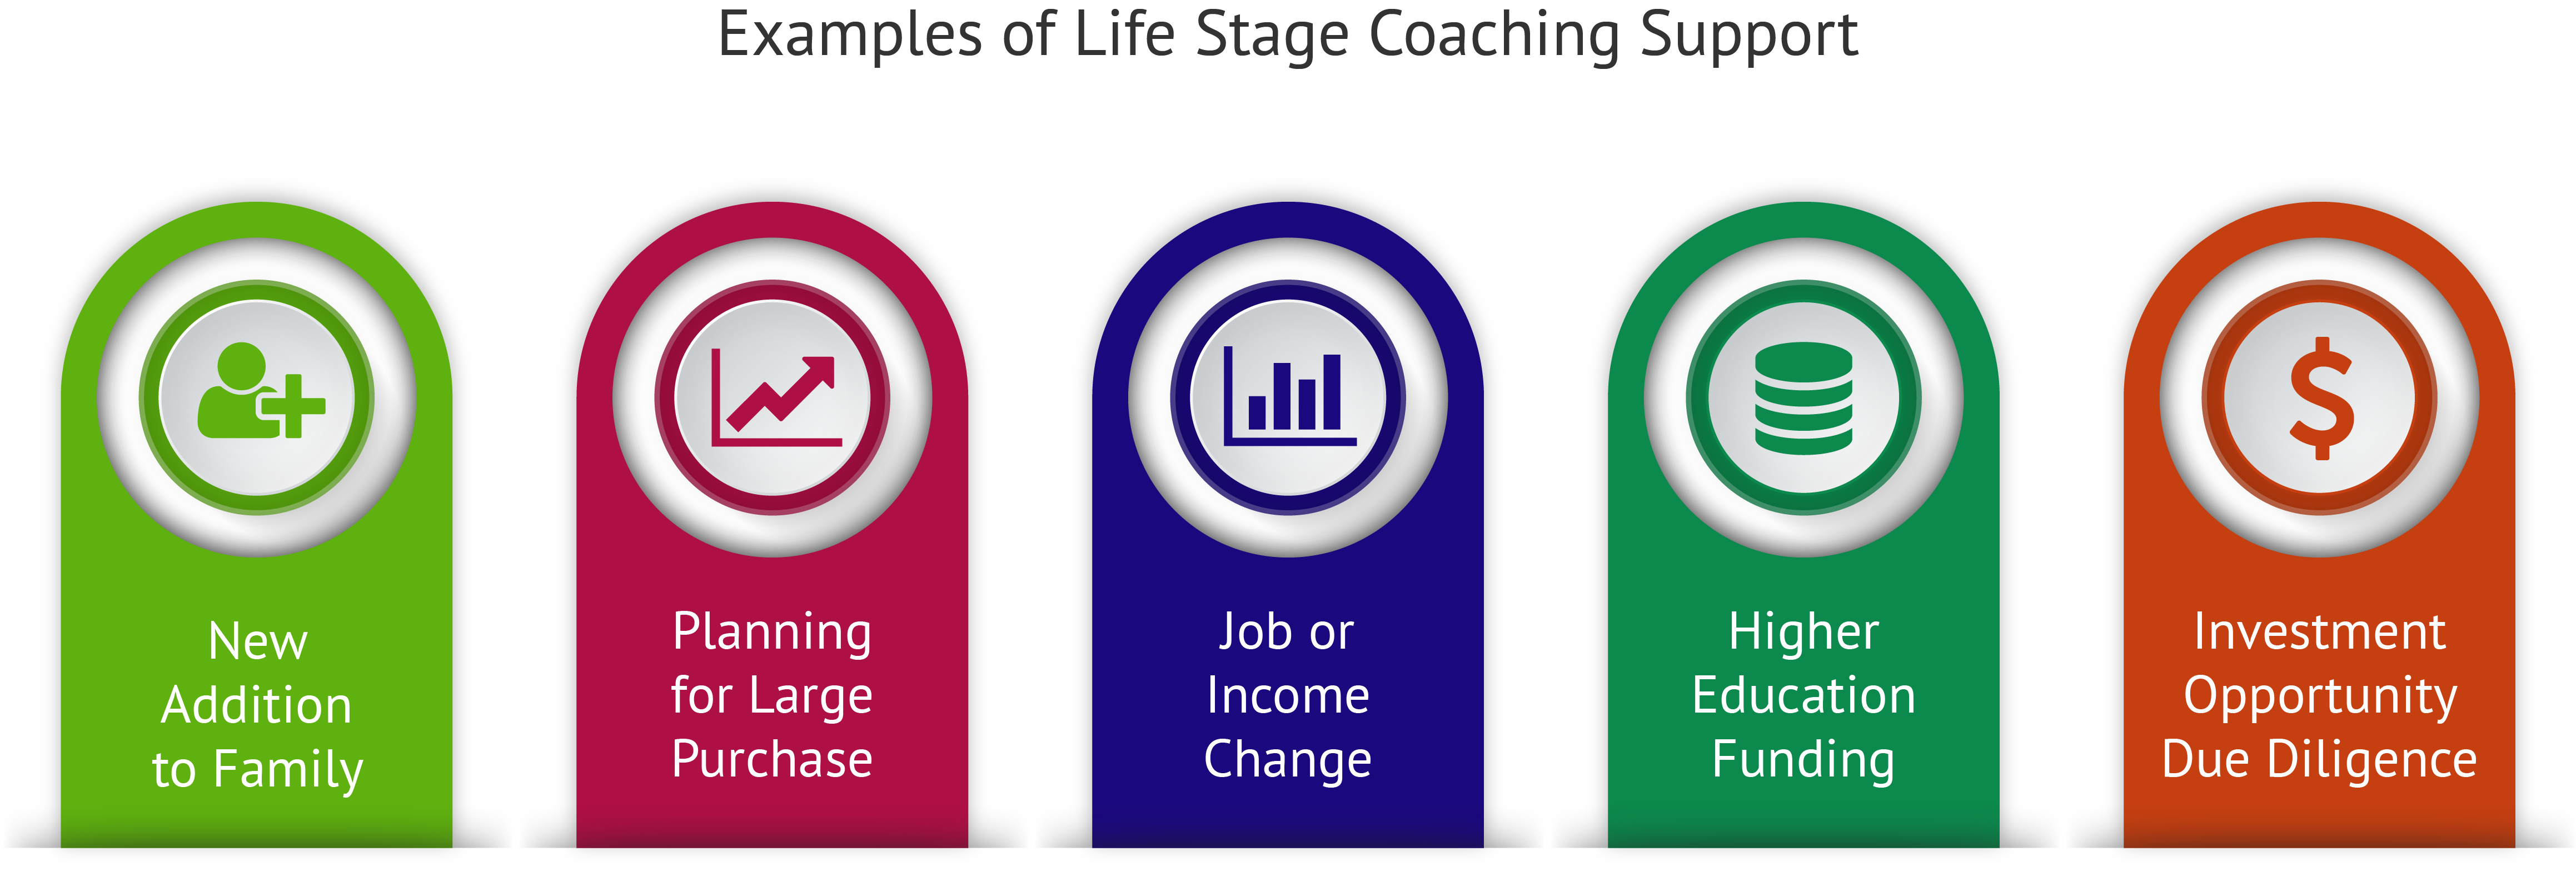 Essential Financial Literacy Counseling Capabilities